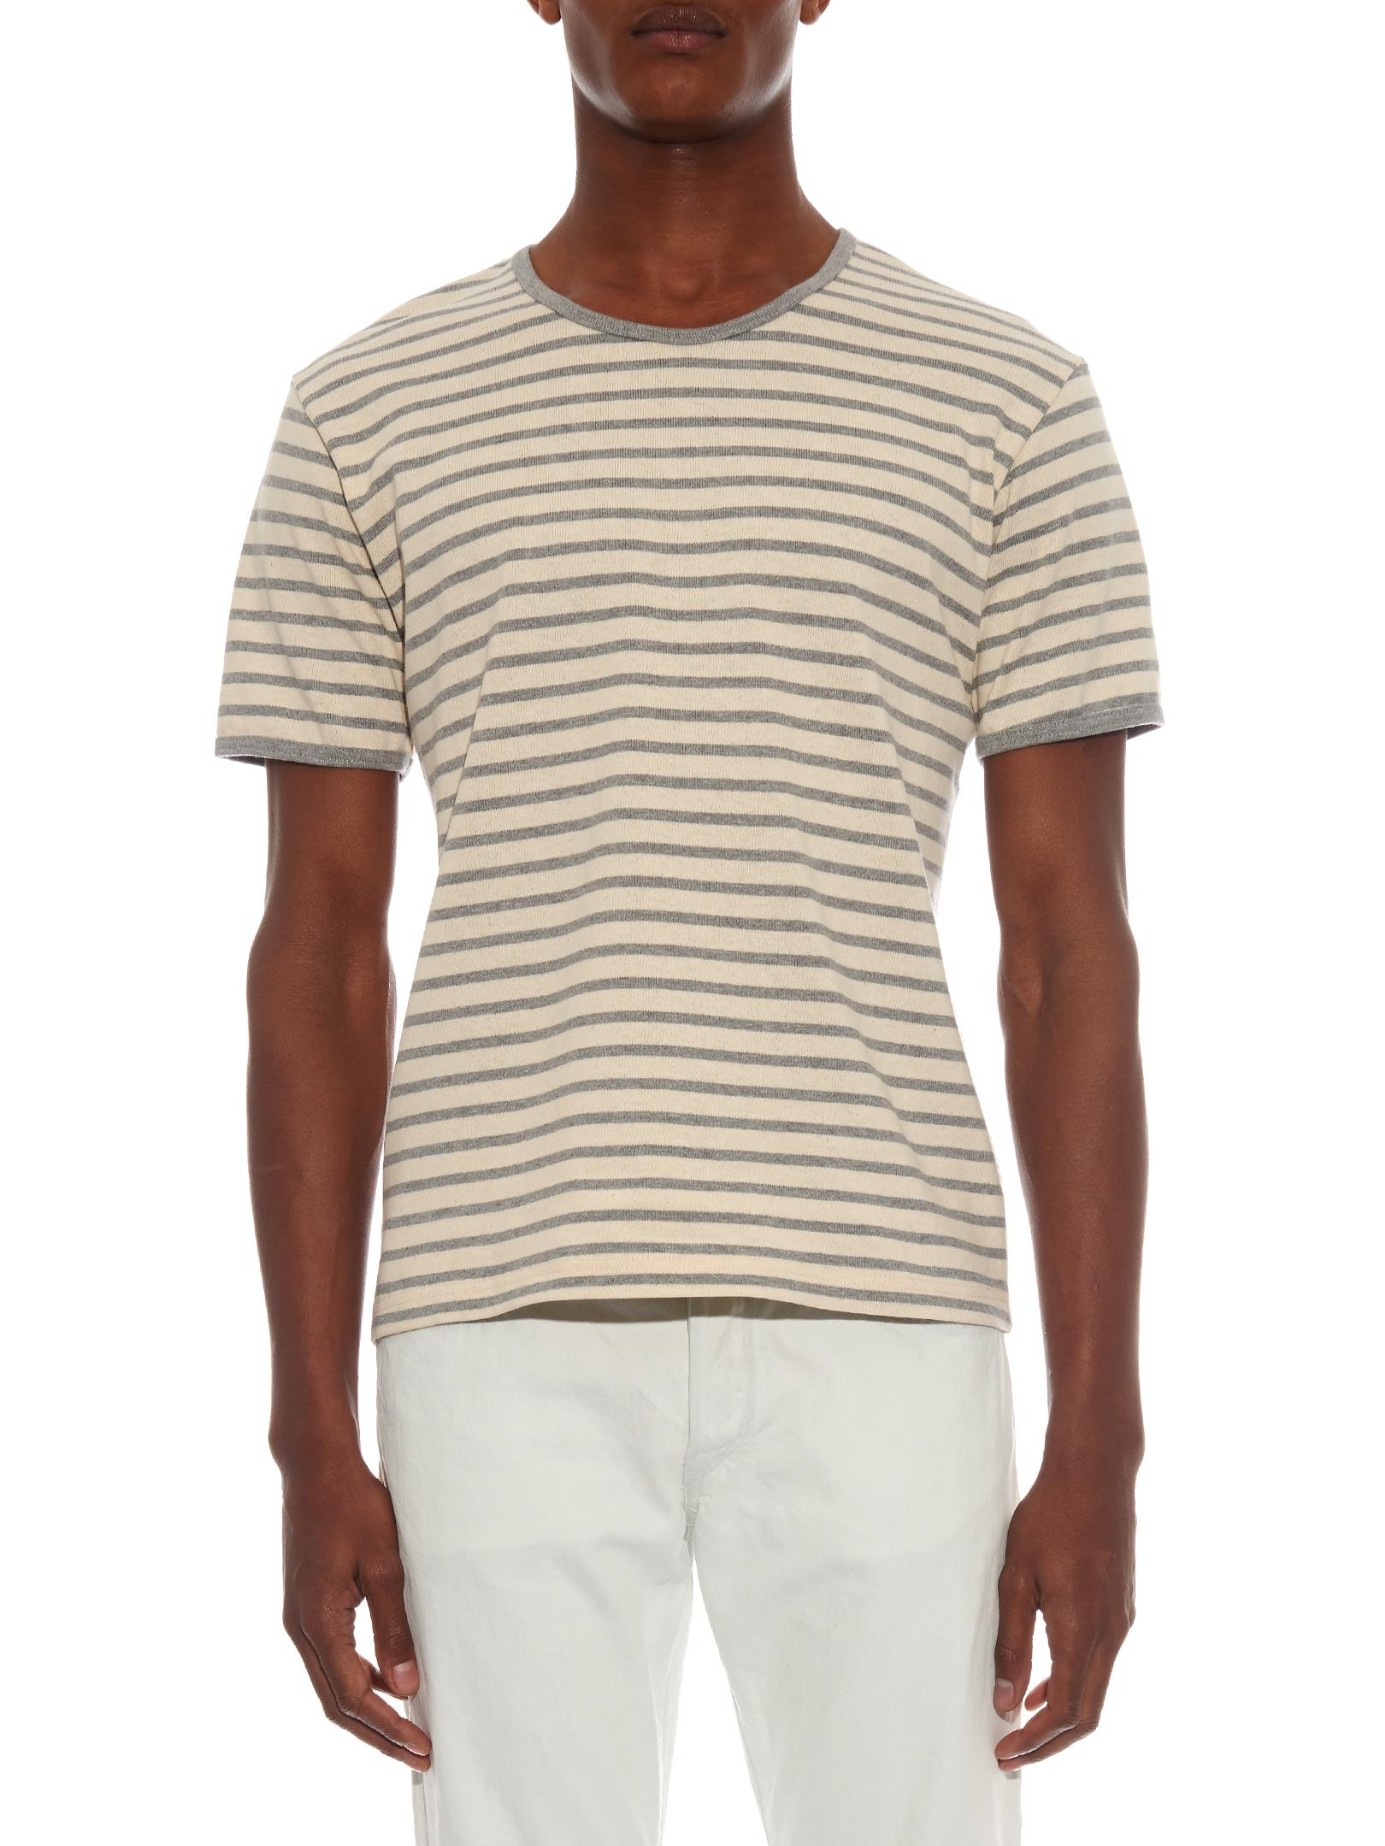 Thaddeus o 39 neil striped cotton t shirt in gray for men lyst for Grey striped t shirt